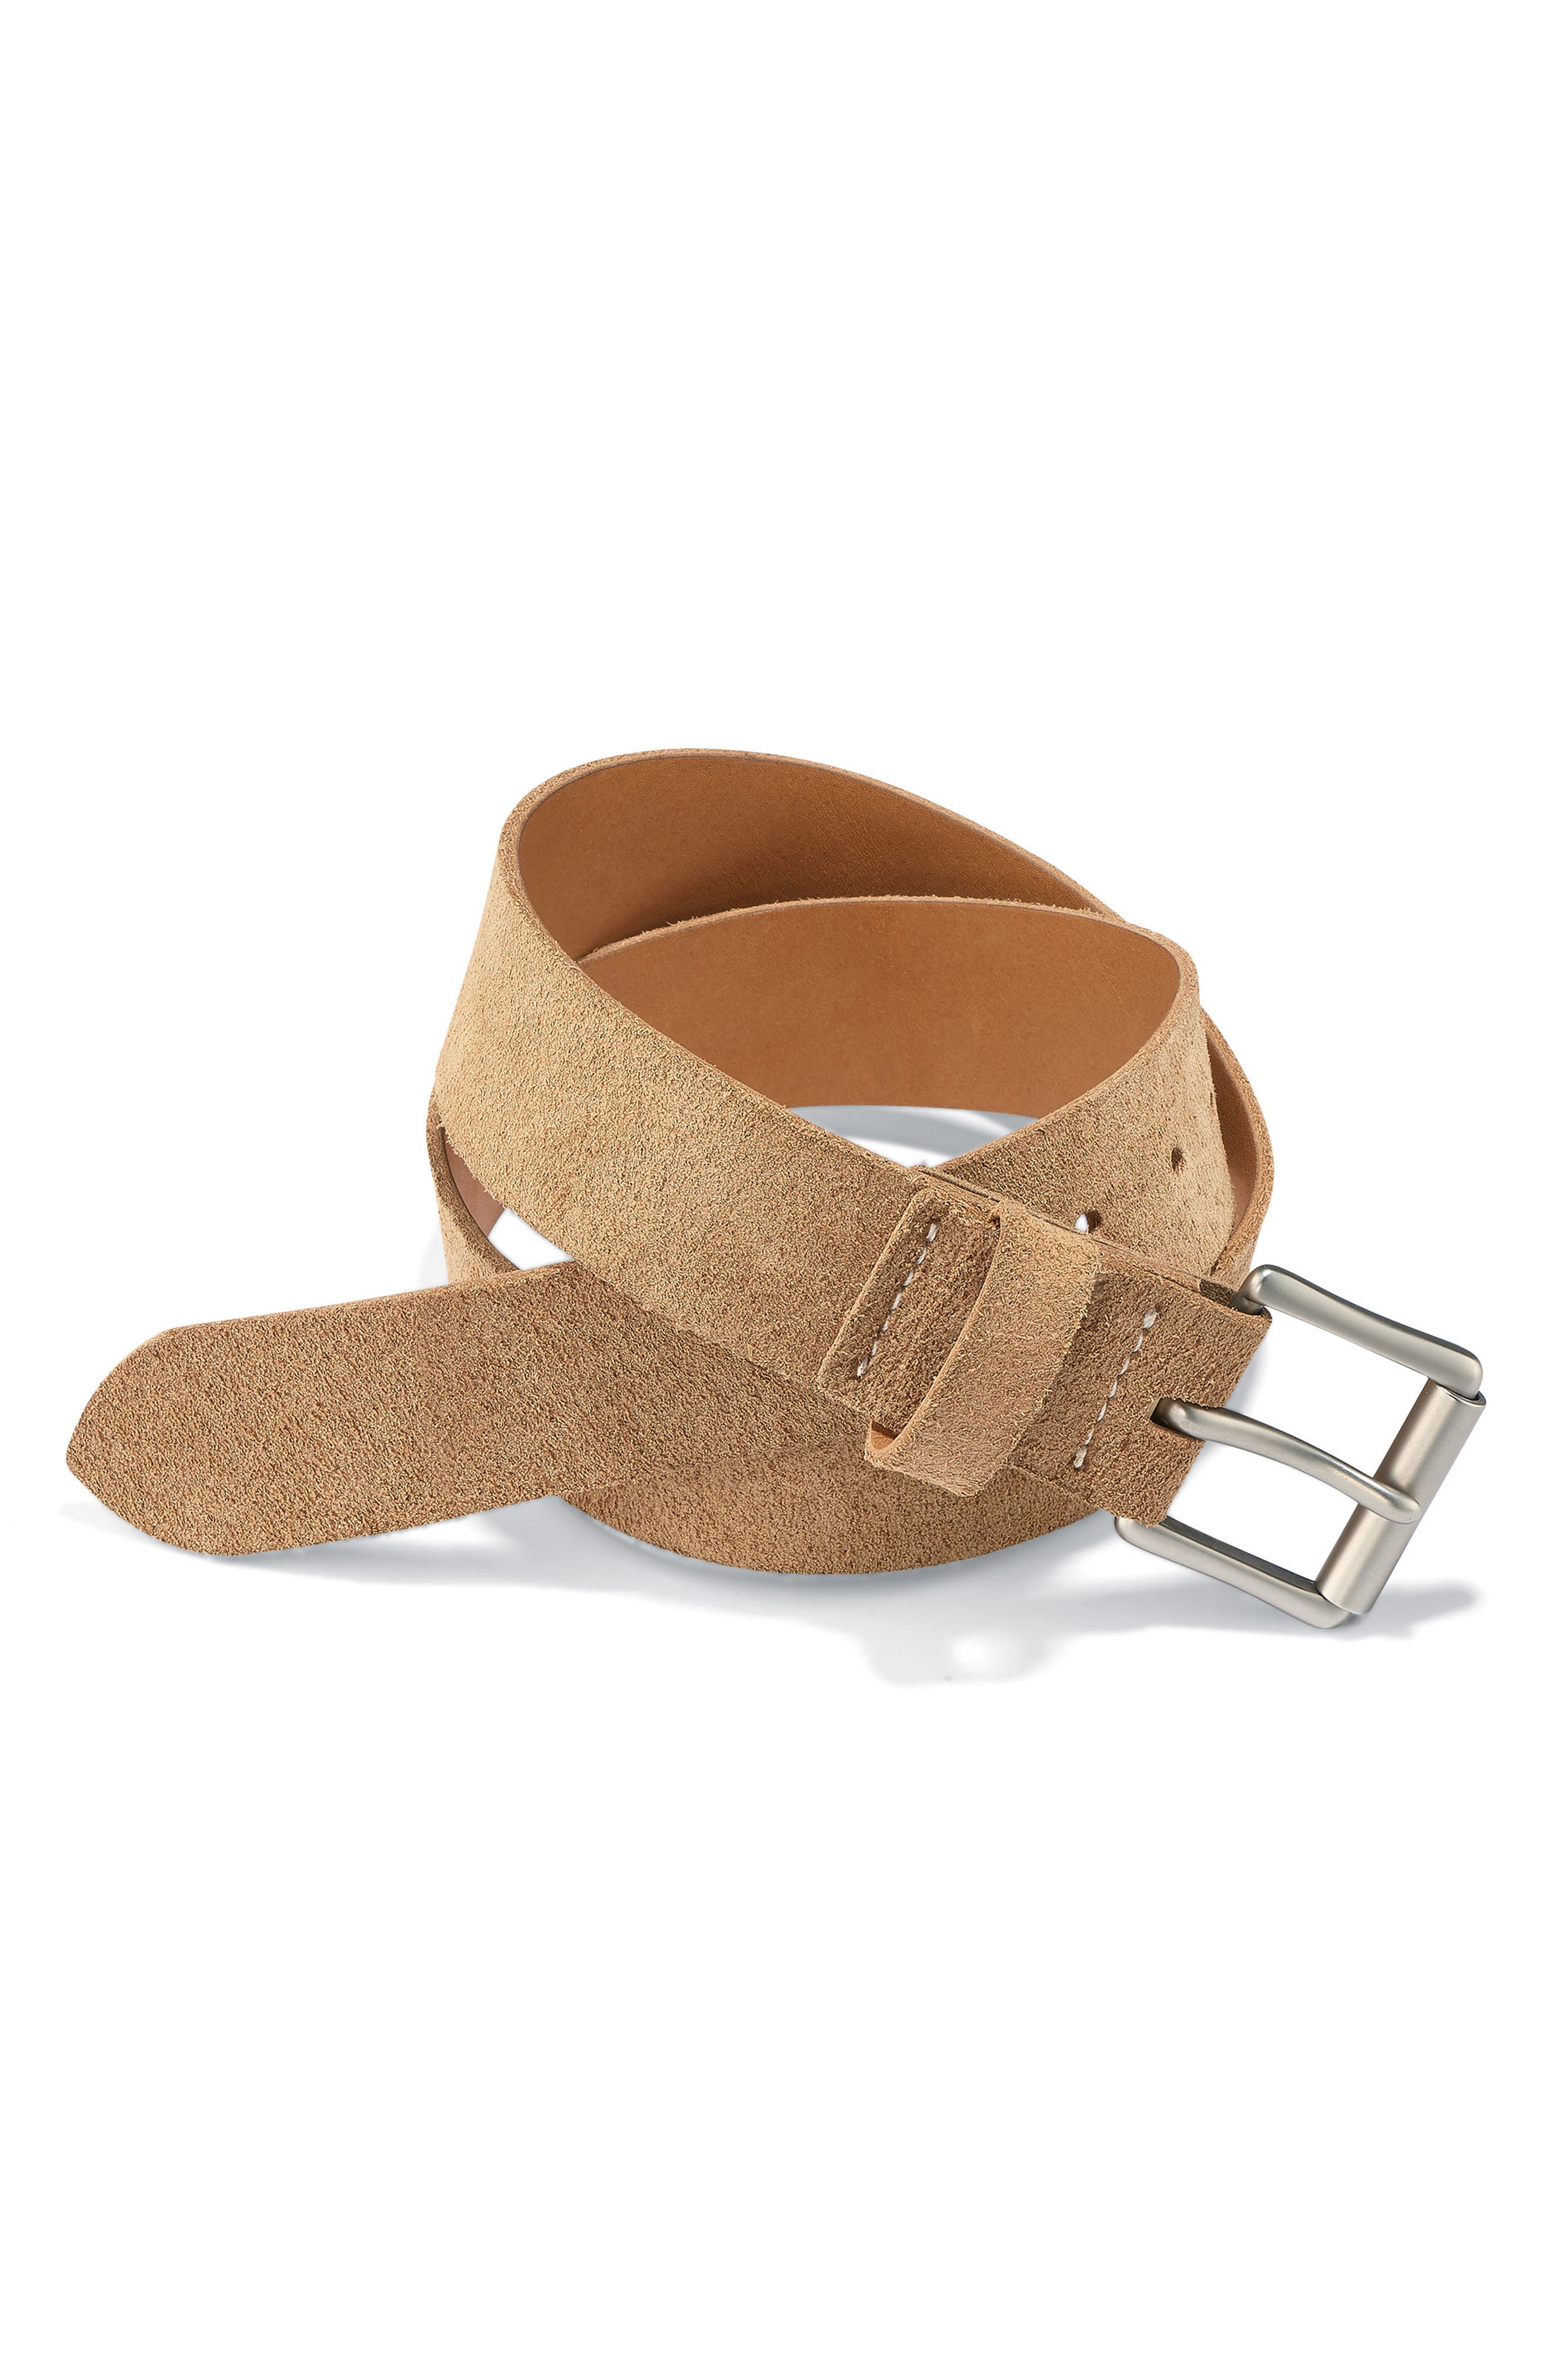 Leather Belt,                         Main,                         color, HAWTHORNE MULESKINNER